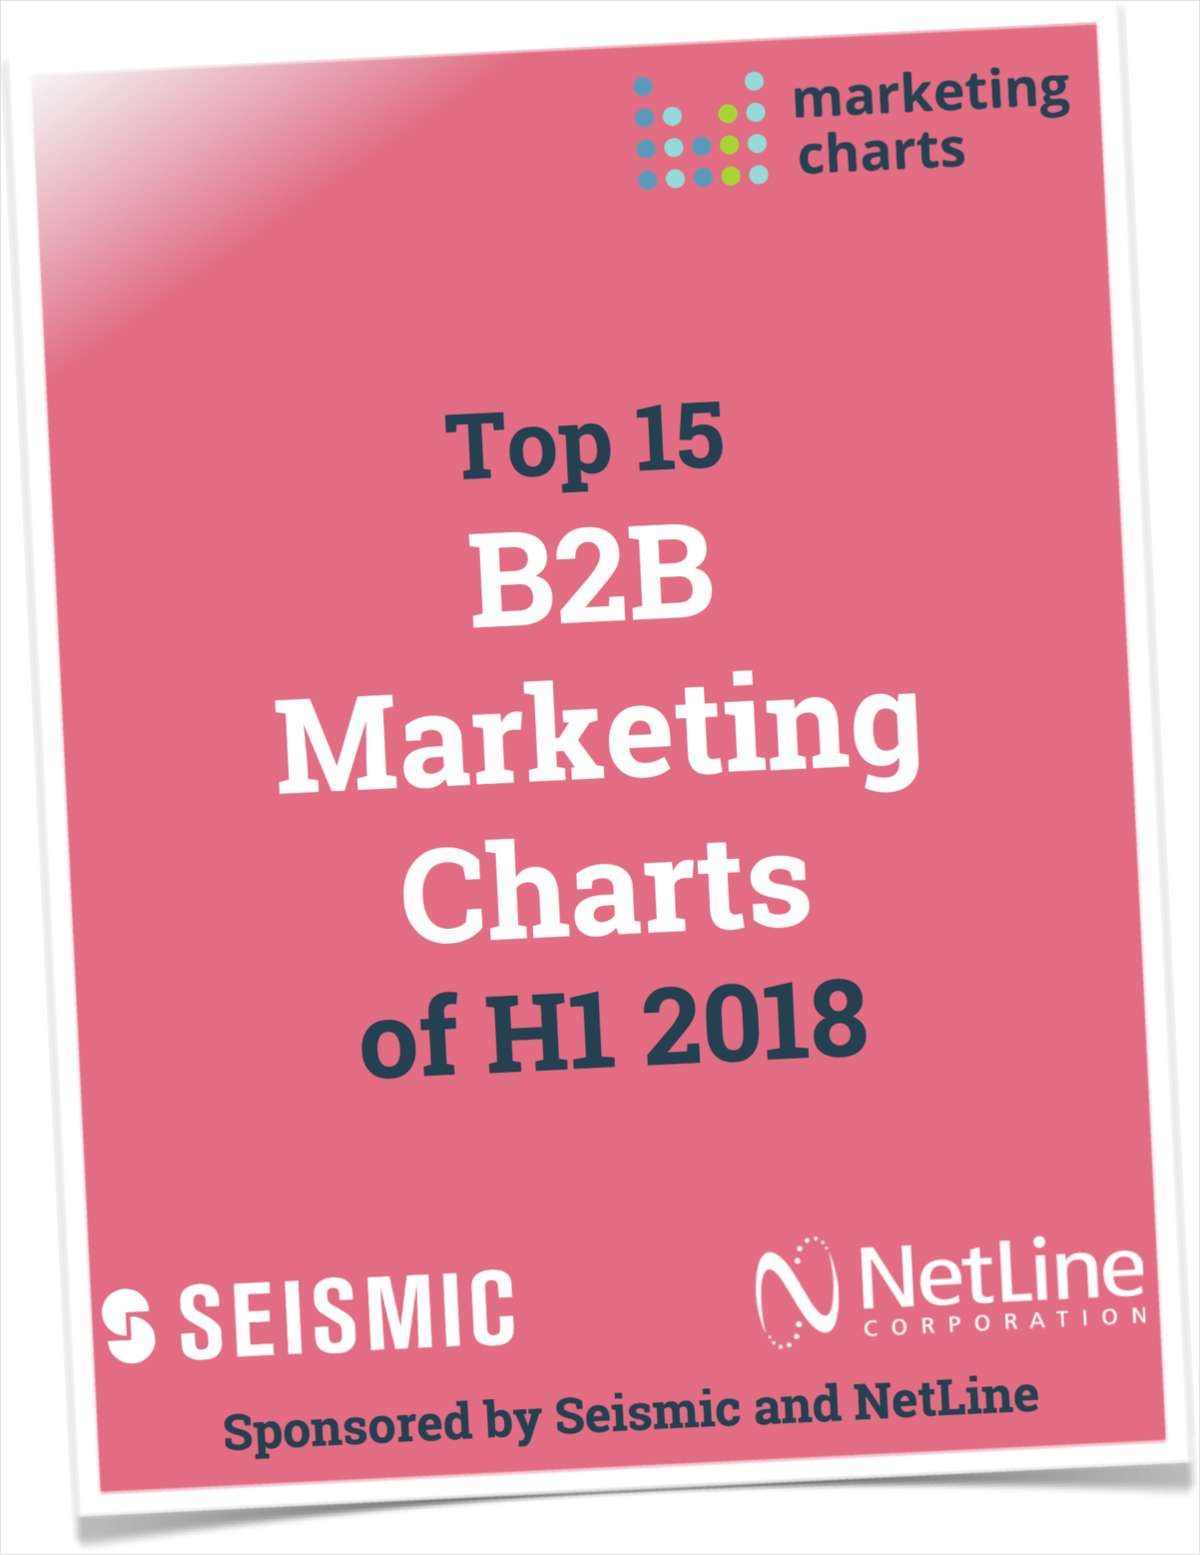 Top 15 B2B Marketing Charts of H1 2018